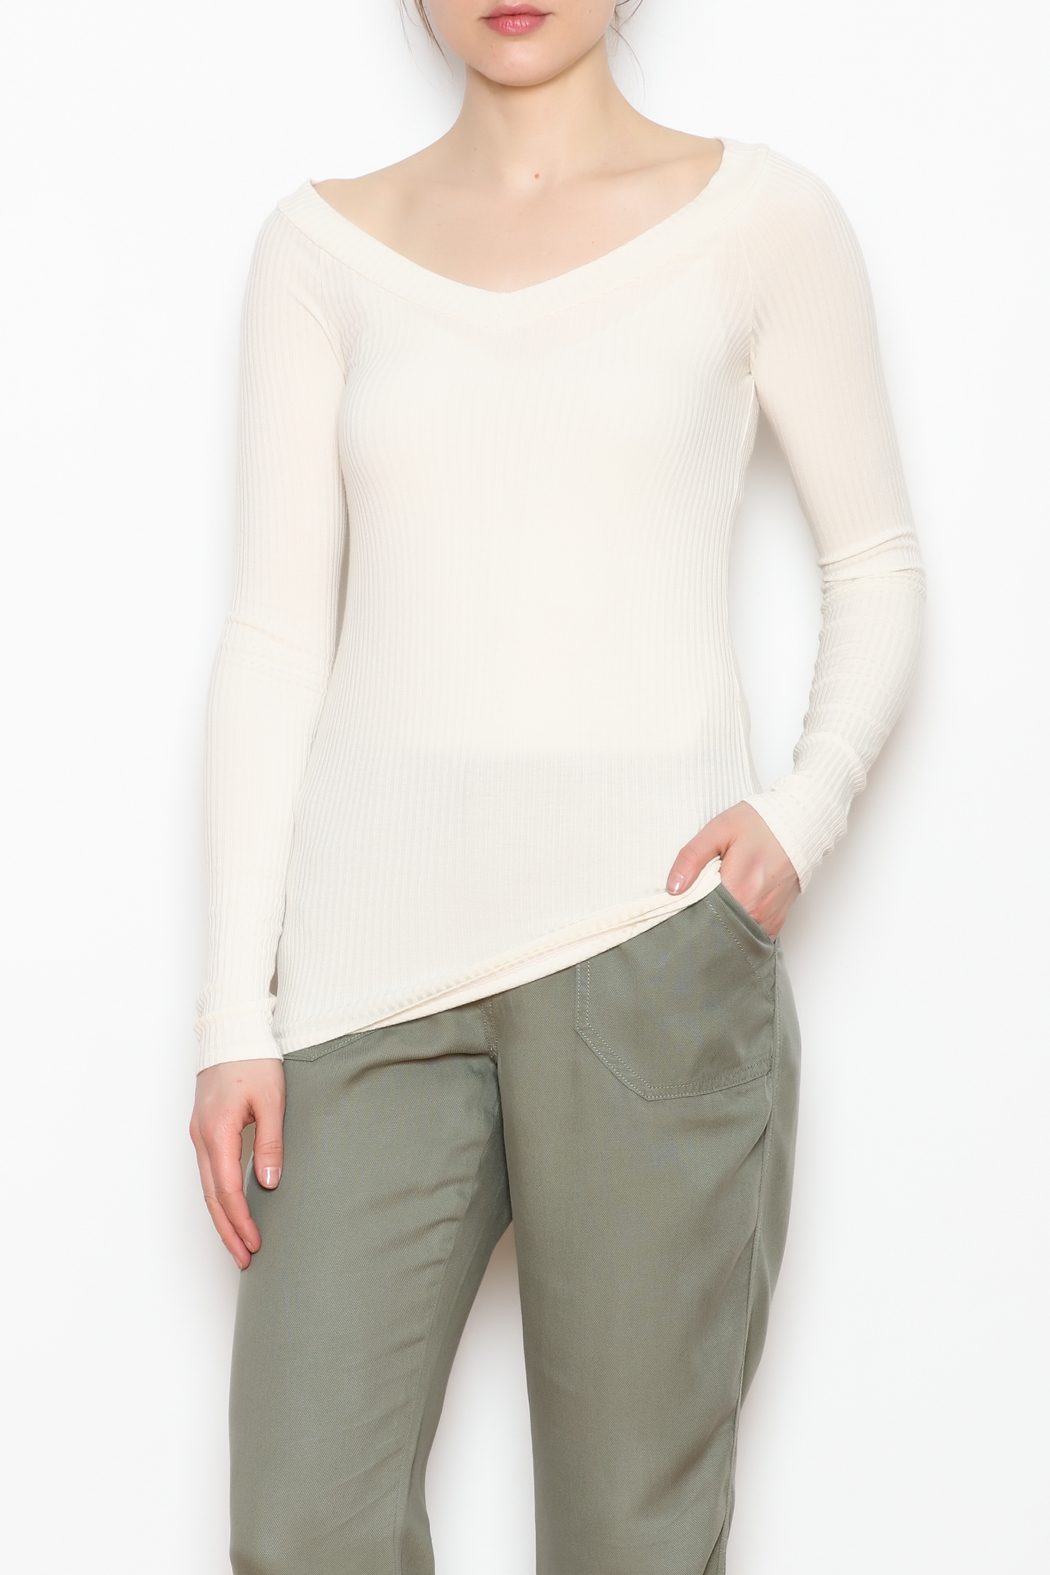 Errant Mabel Ribbed Top - Front Full Image